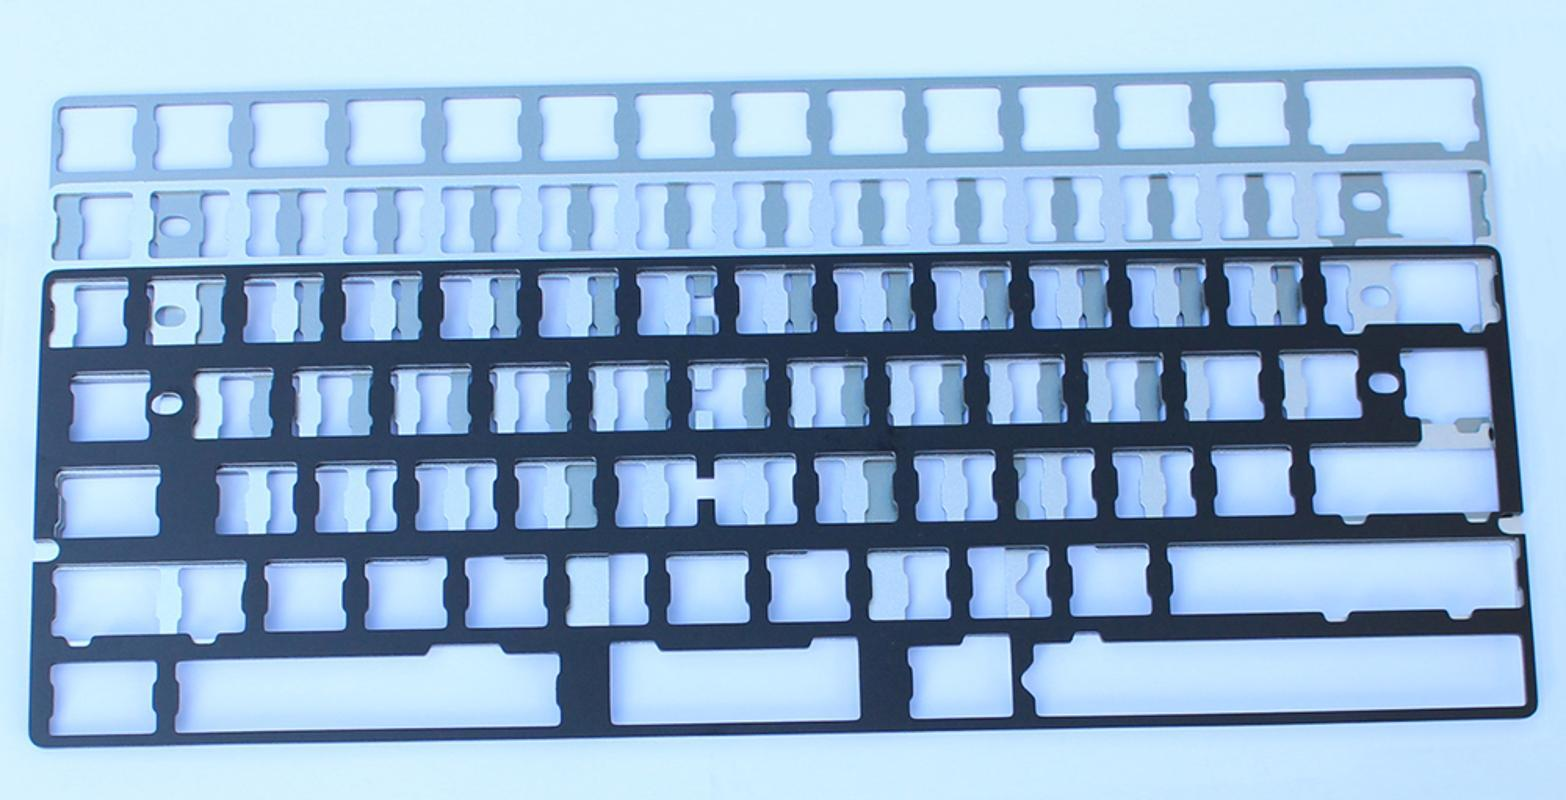 Aluminum Plates Support GH60 Poker XD60 XD64 CNC Anodized Plate add Arrow Keys for MX Switches of 60% Mechanical Keyboards